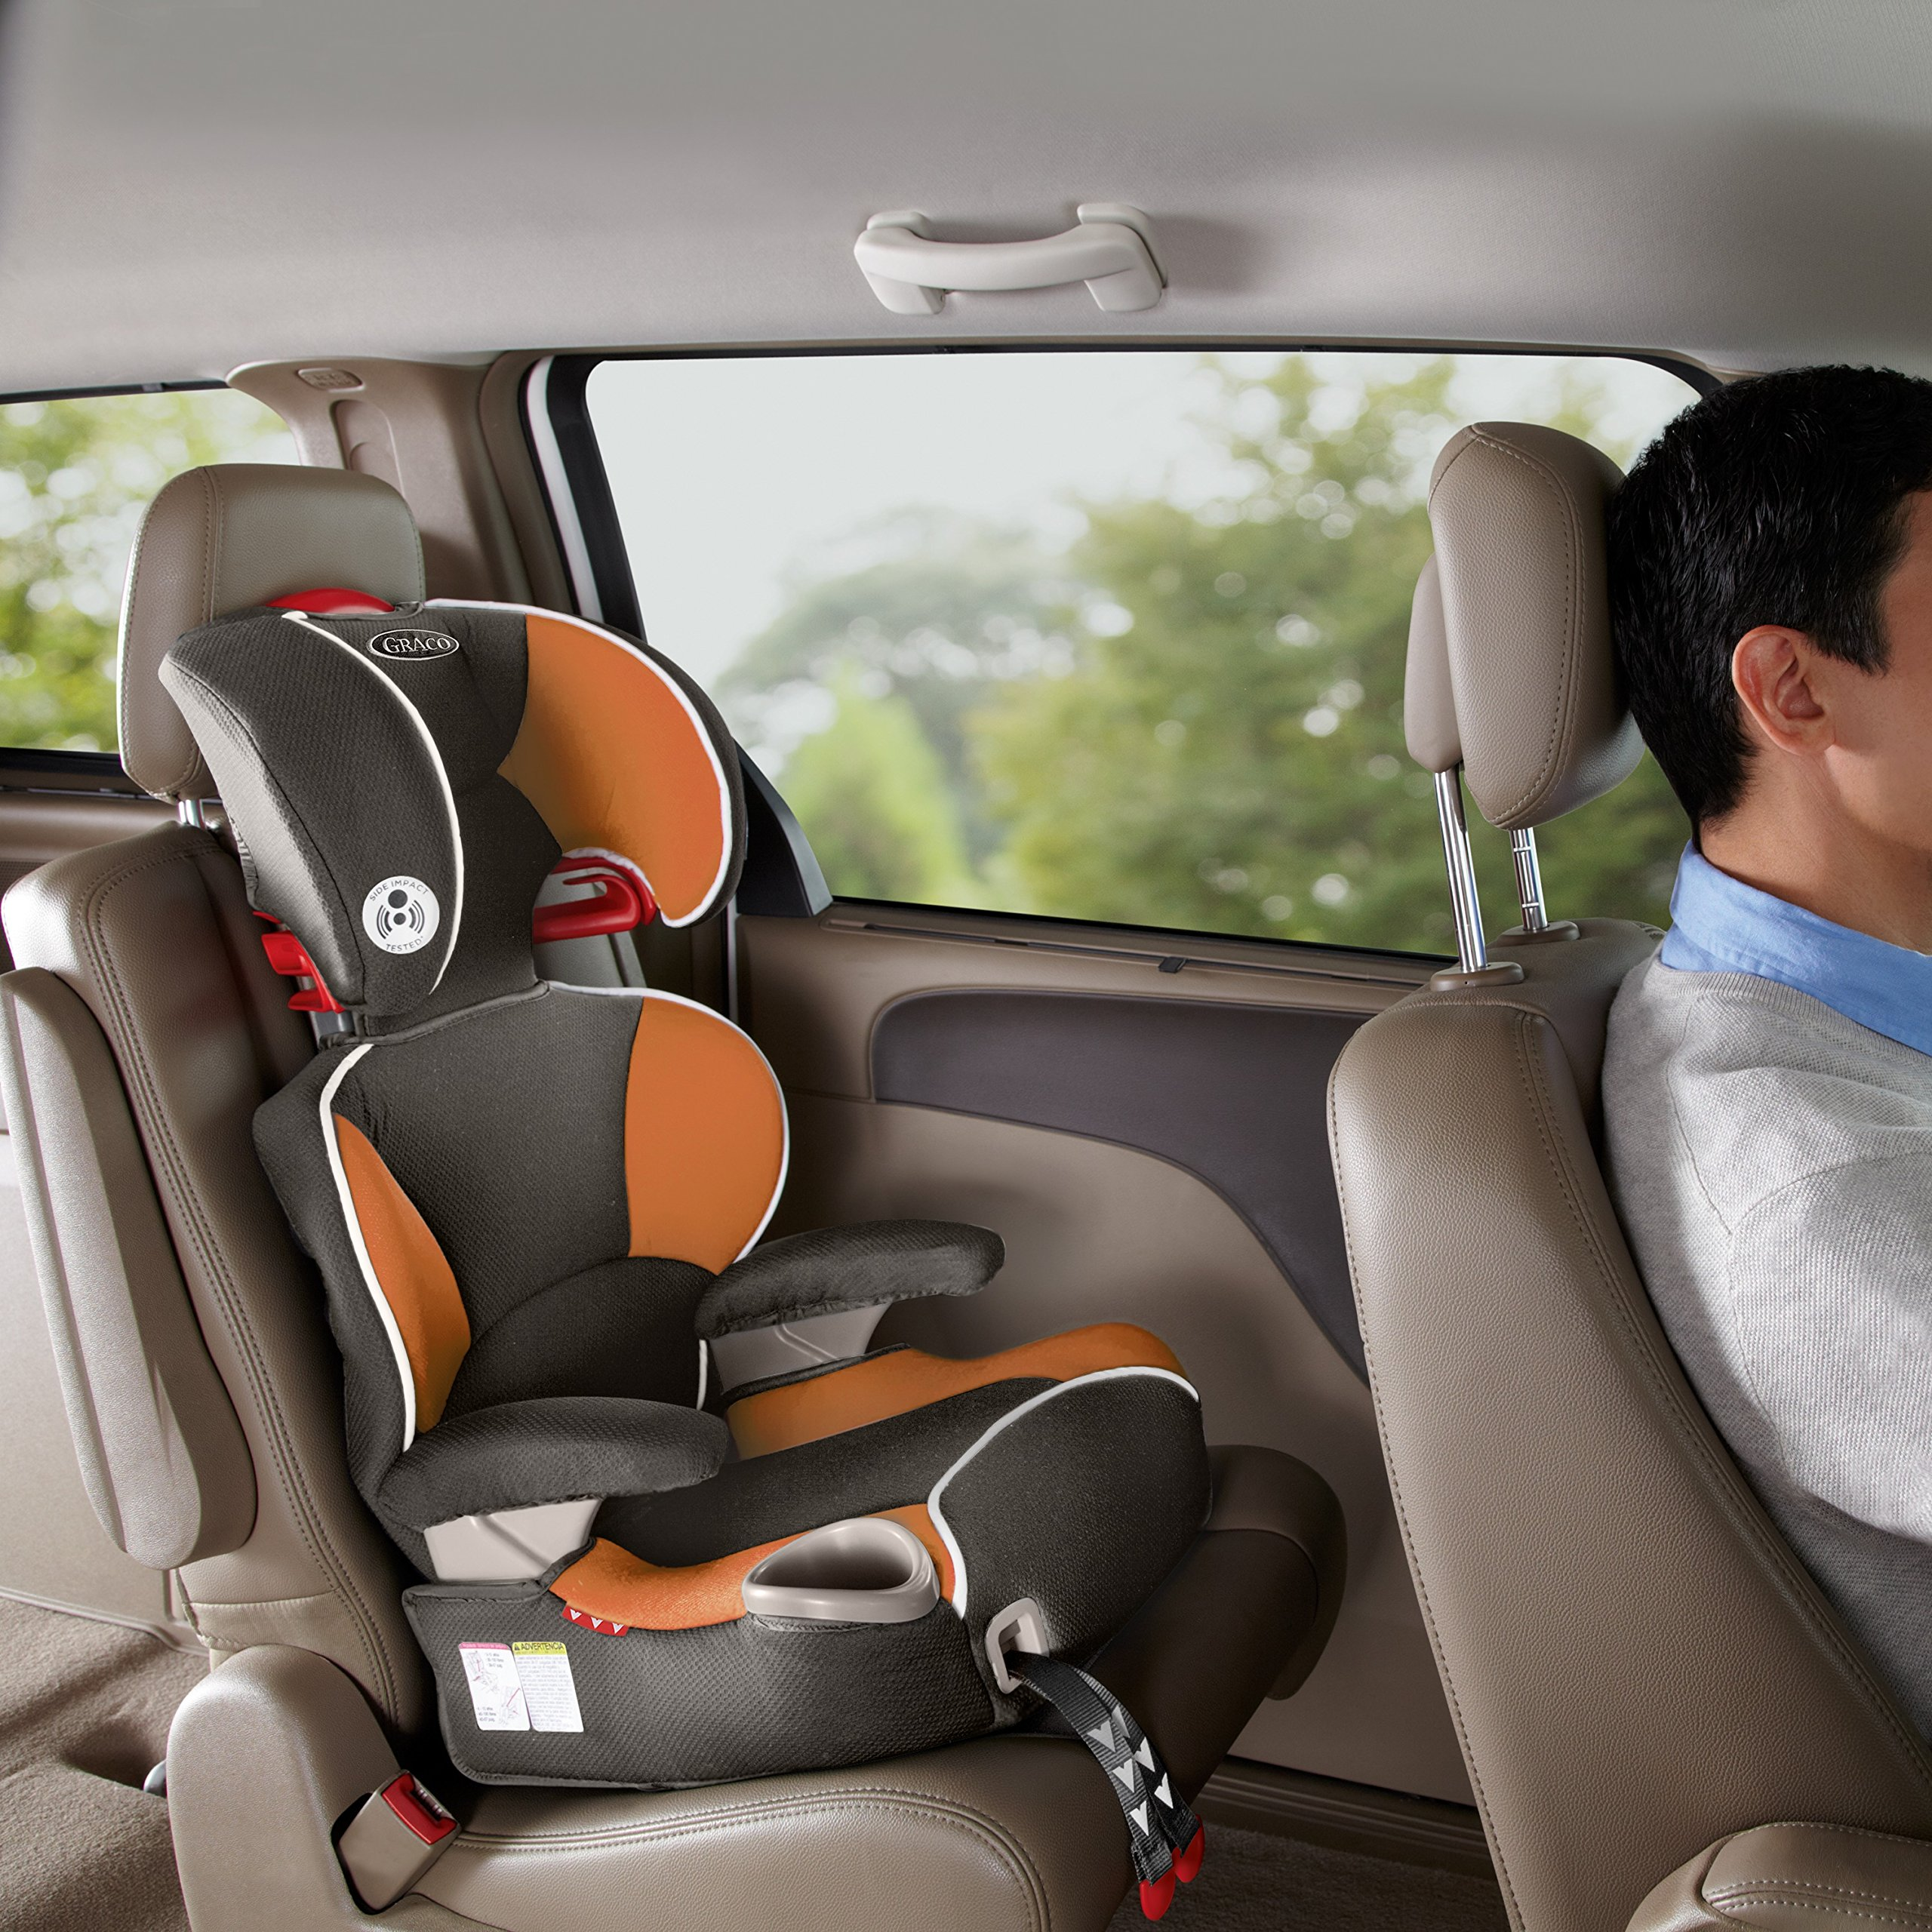 graco affix highback booster car seat with latch system tangerine one size amazon. Black Bedroom Furniture Sets. Home Design Ideas